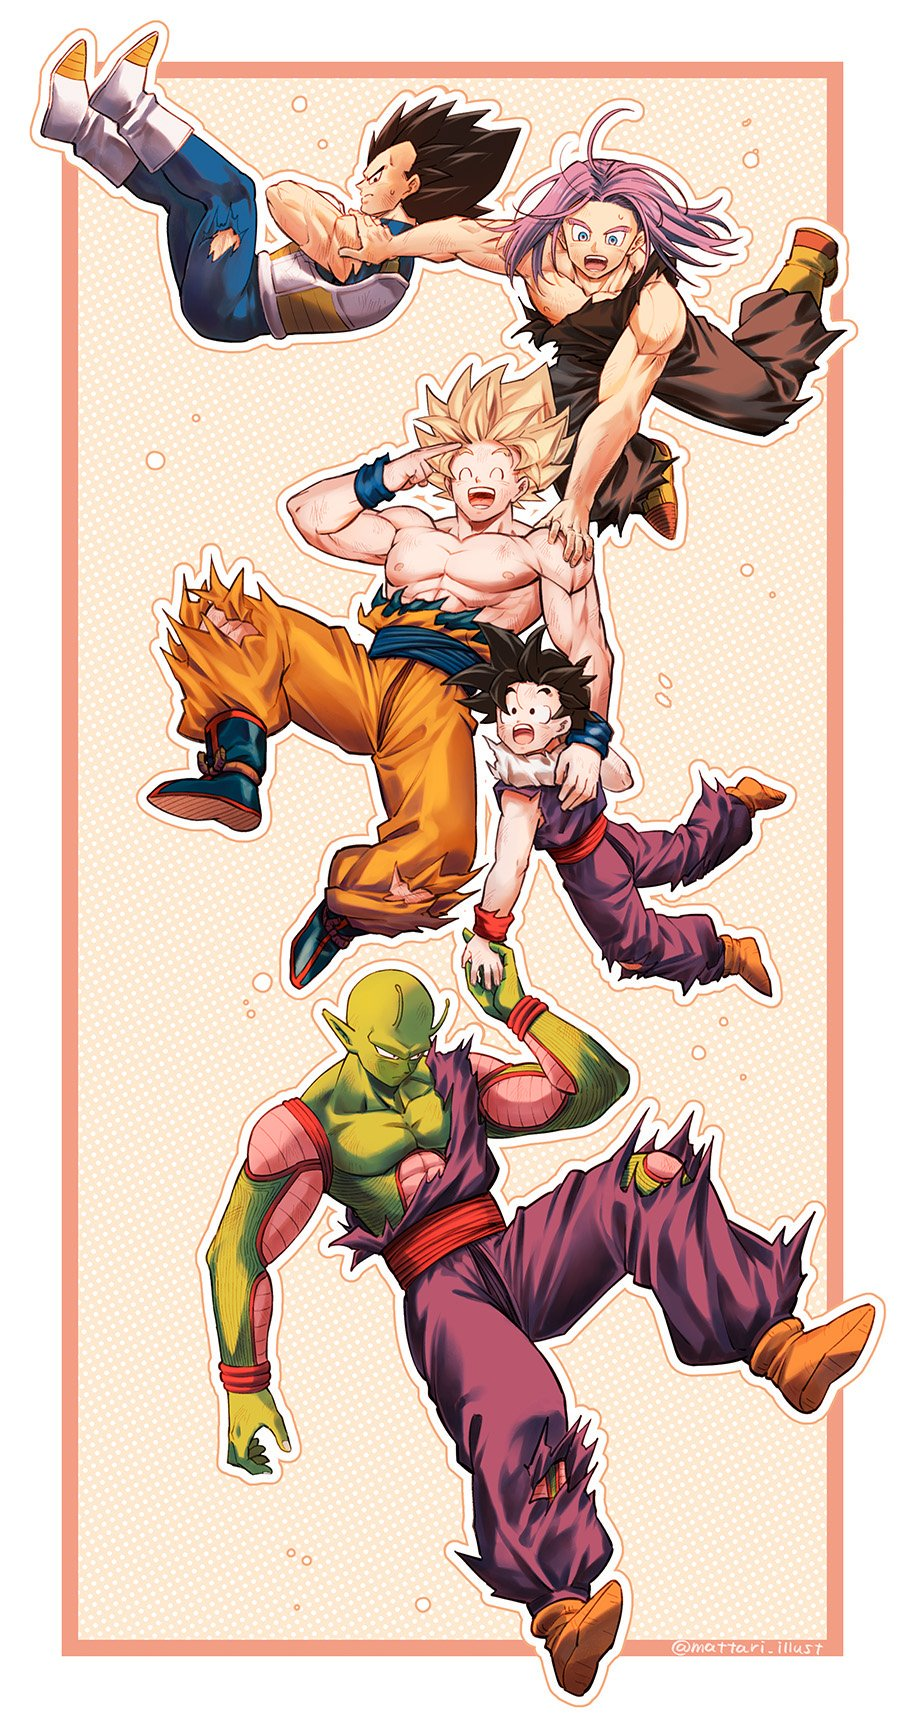 5boys ^_^ annoyed antennae armor black_eyes black_hair blonde_hair blue_eyes boots border bruise bubble bubble_background closed_eyes crossed_arms d: dirty dirty_clothes dirty_face dragon_ball dragon_ball_z expressionless falling father_and_son finger_on_forehead fingernails floating_hair frown full_body hand_on_another's_shoulder happy highres holding_hands injury long_hair looking_at_another looking_away looking_down looking_up male_focus mattari_illust multiple_boys nipples open_mouth outside_border pants pectorals piccolo pink_background polka_dot polka_dot_background profile purple_hair serious shirt shirtless simple_background son_gohan son_gokuu spiky_hair super_saiyan sweatdrop teeth torn_clothes torn_legwear torn_pants torn_shirt trunks_(future)_(dragon_ball) twitter_username two-tone_background upper_teeth vegeta white_background white_footwear wristband yellow_footwear